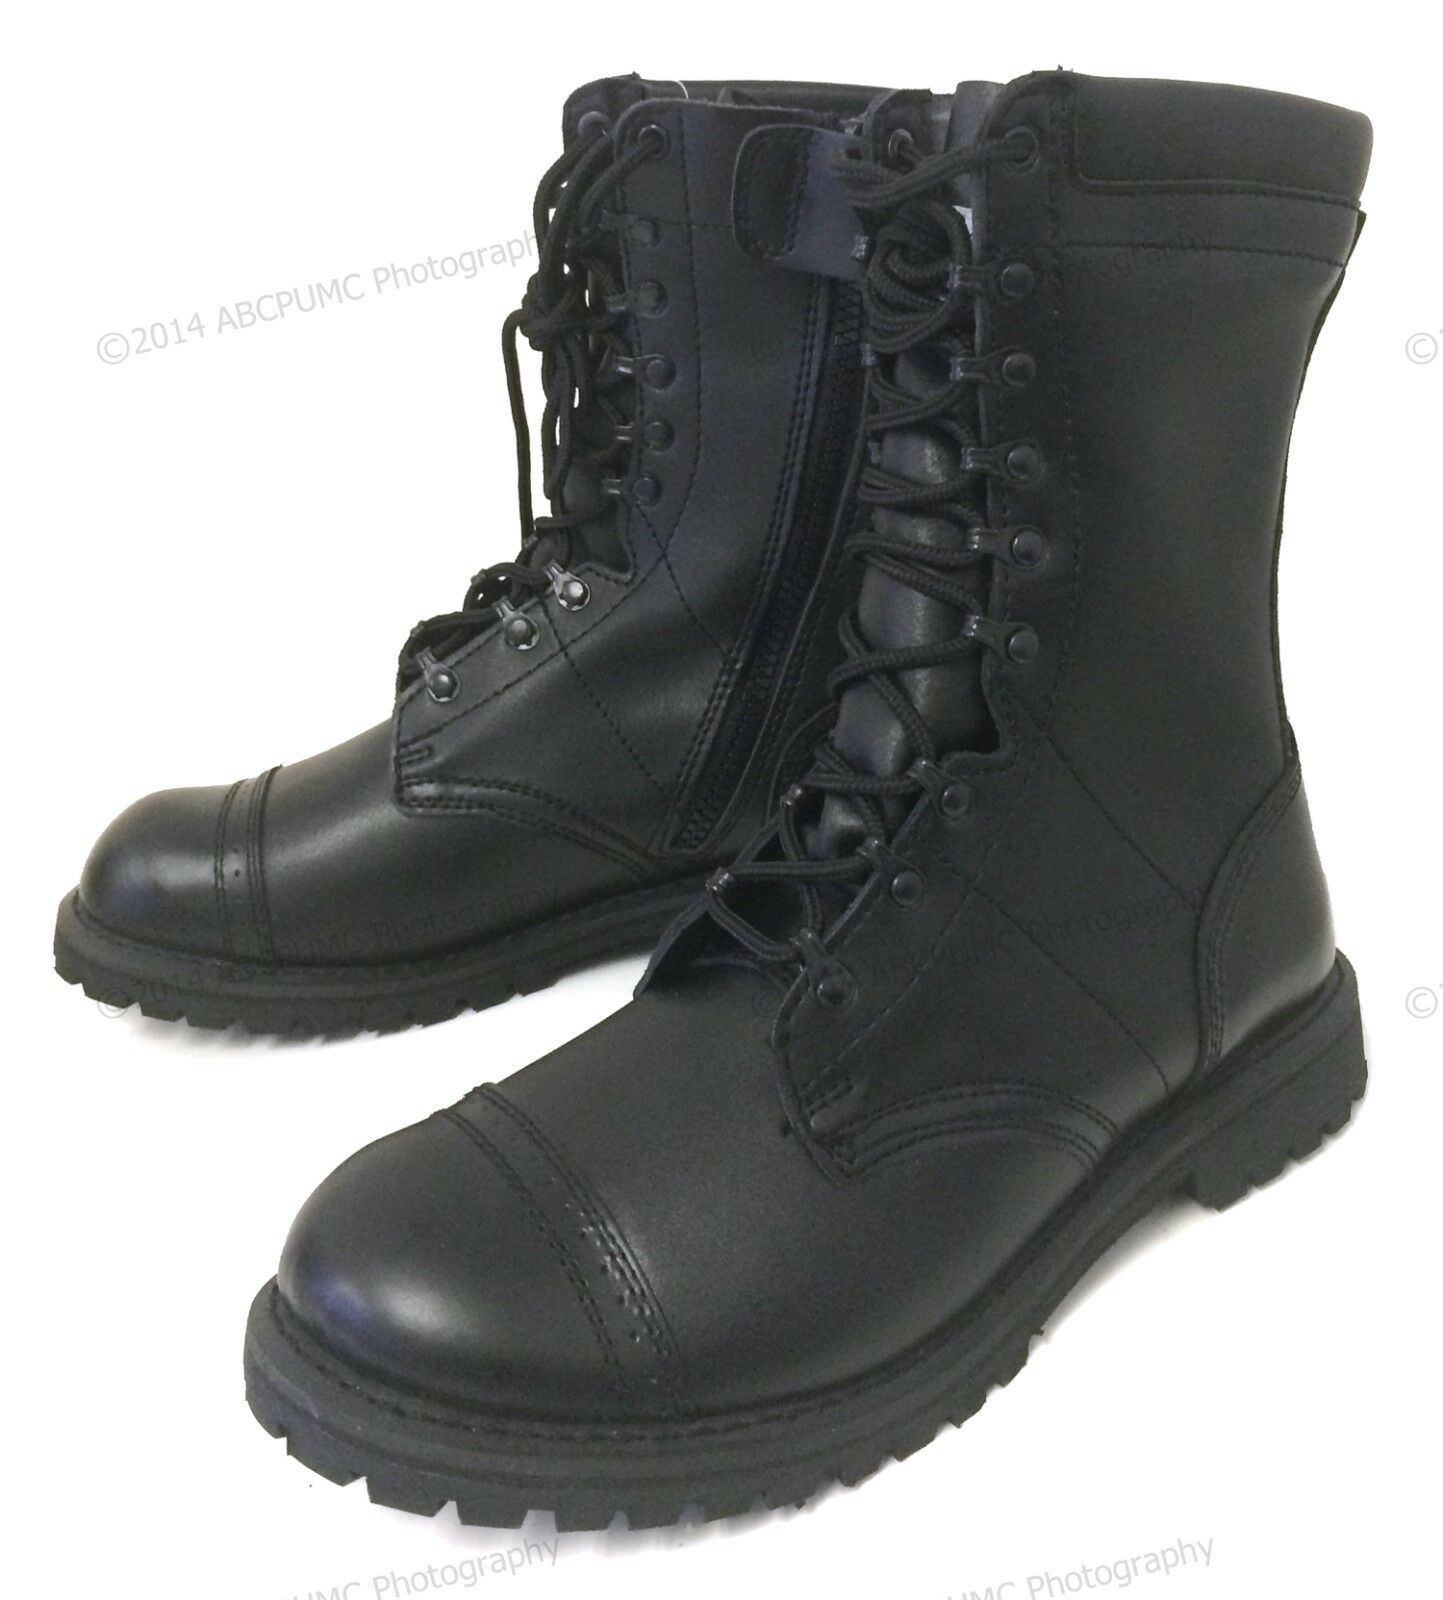 Brand New Men's Leather Tactical Boots Combat Military Army Work Zipper Shoes